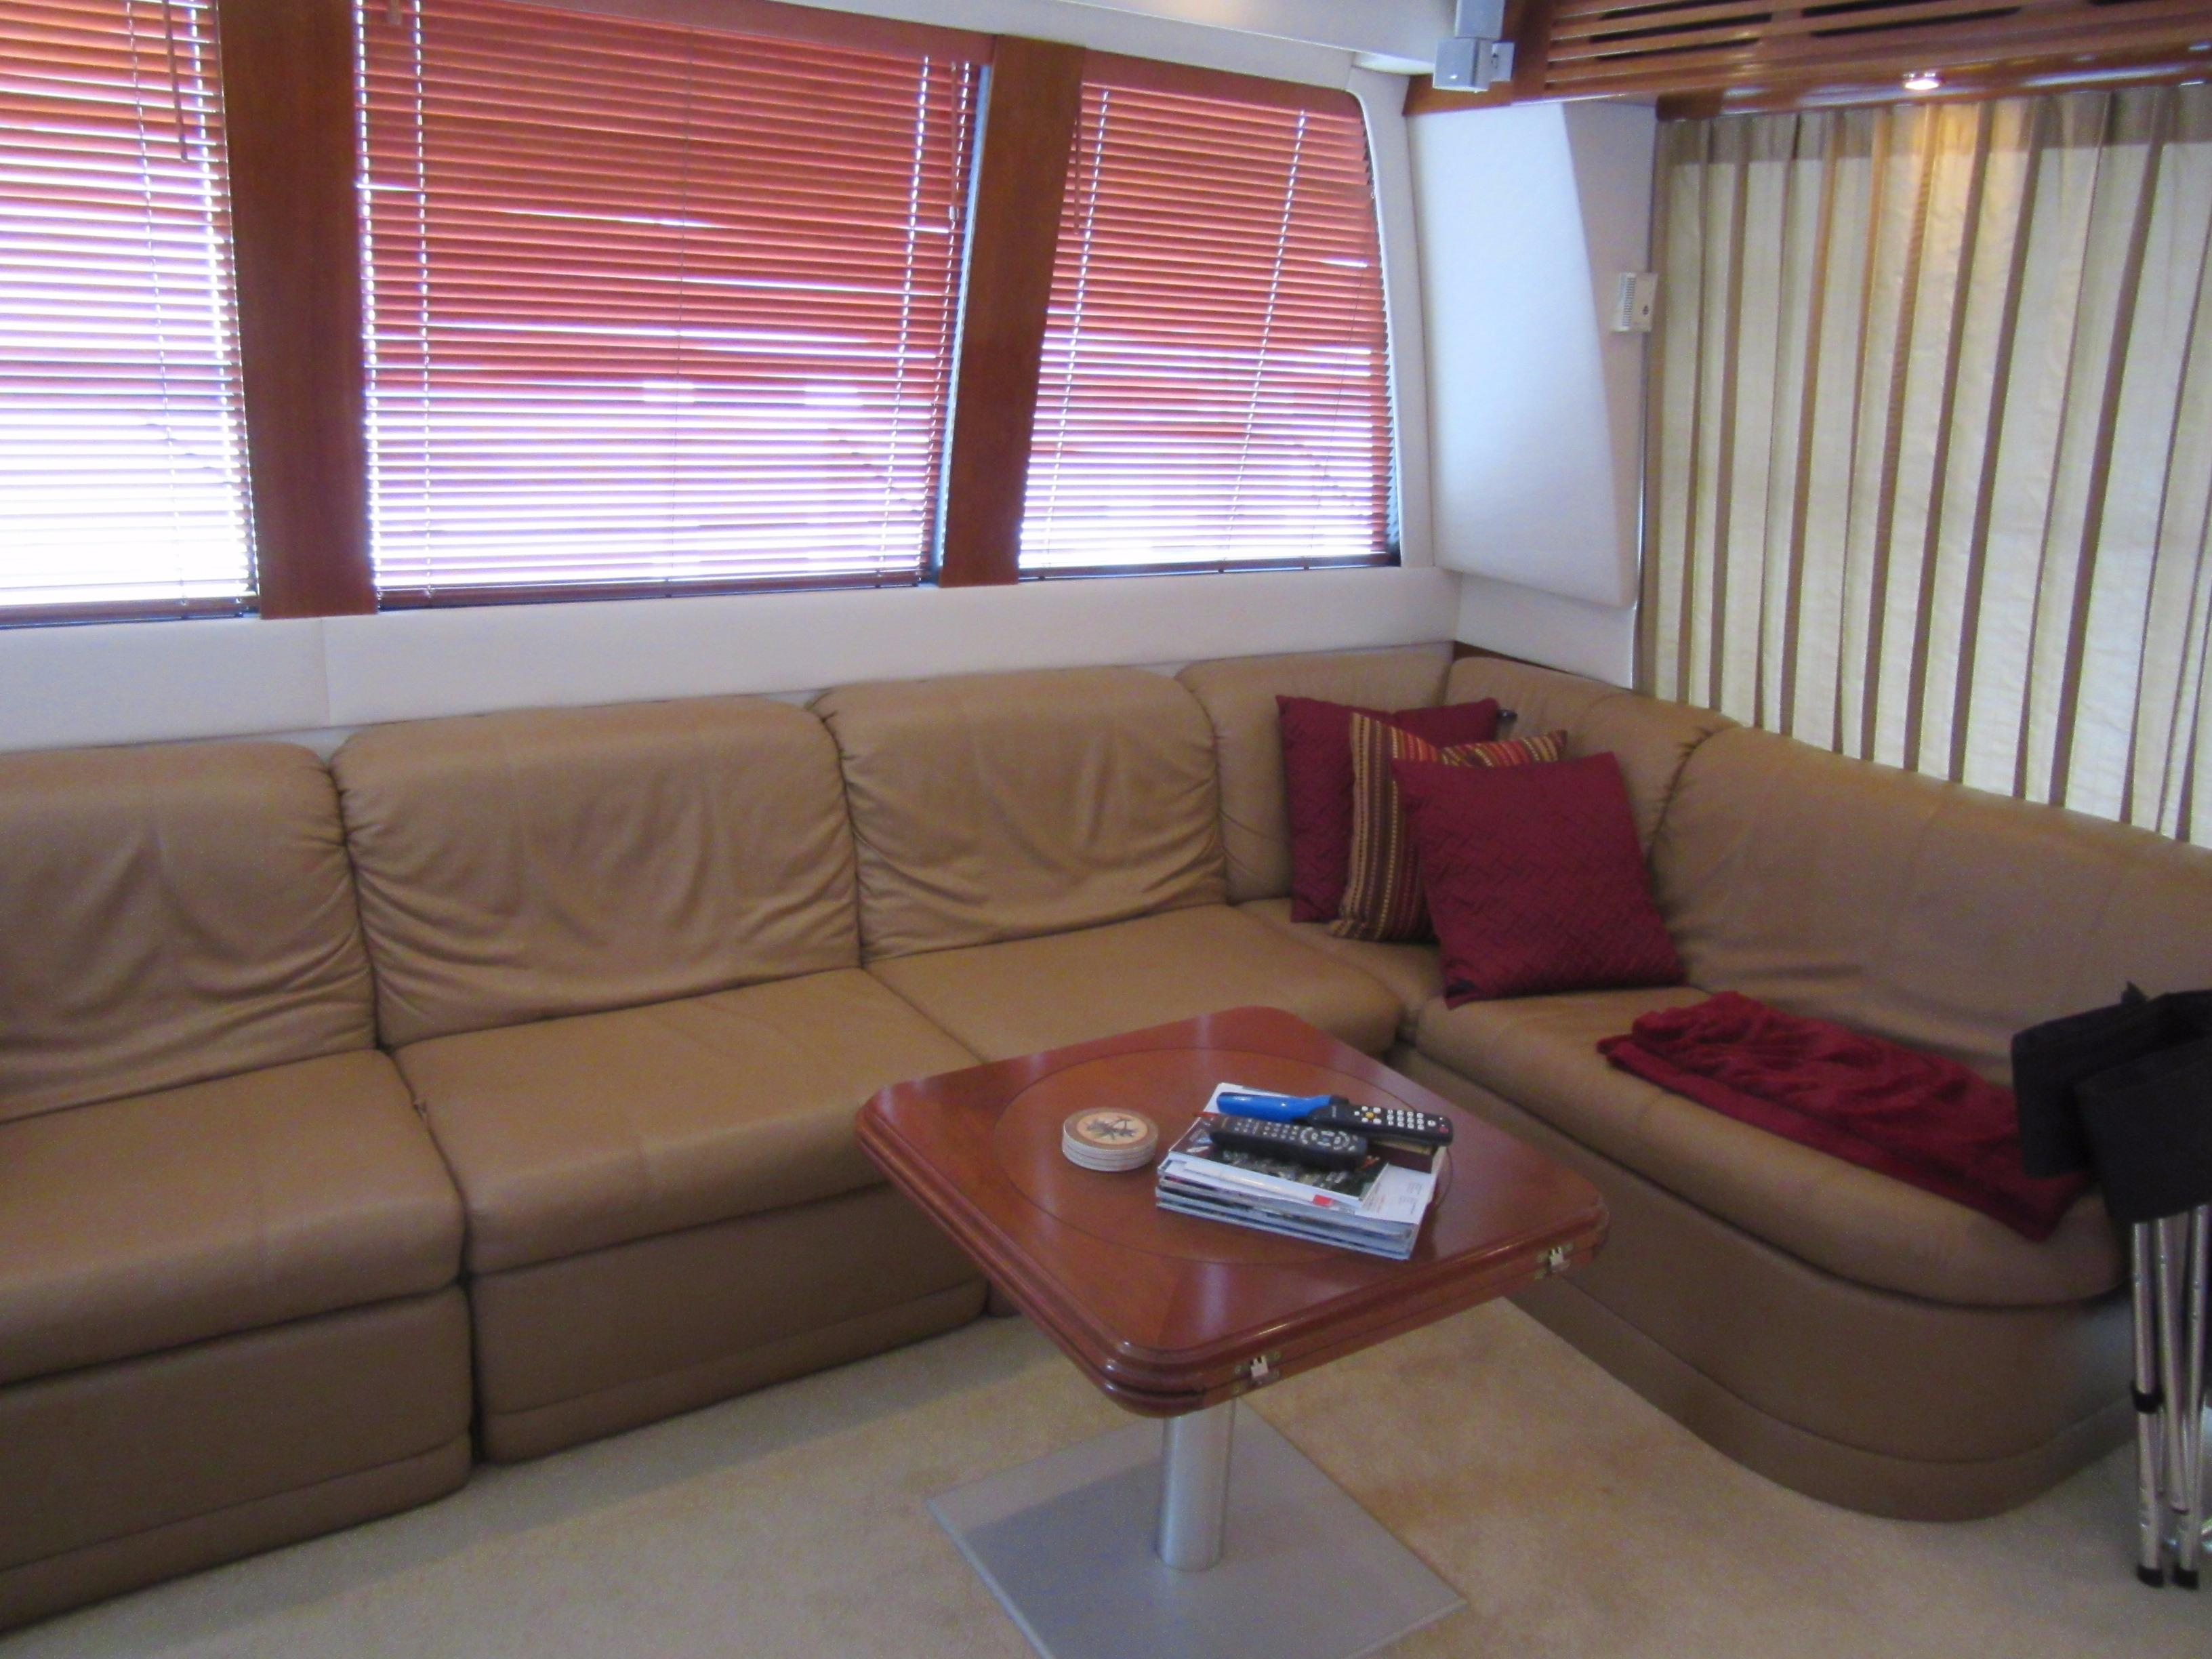 SALON SETTEE WITH INCLINERS